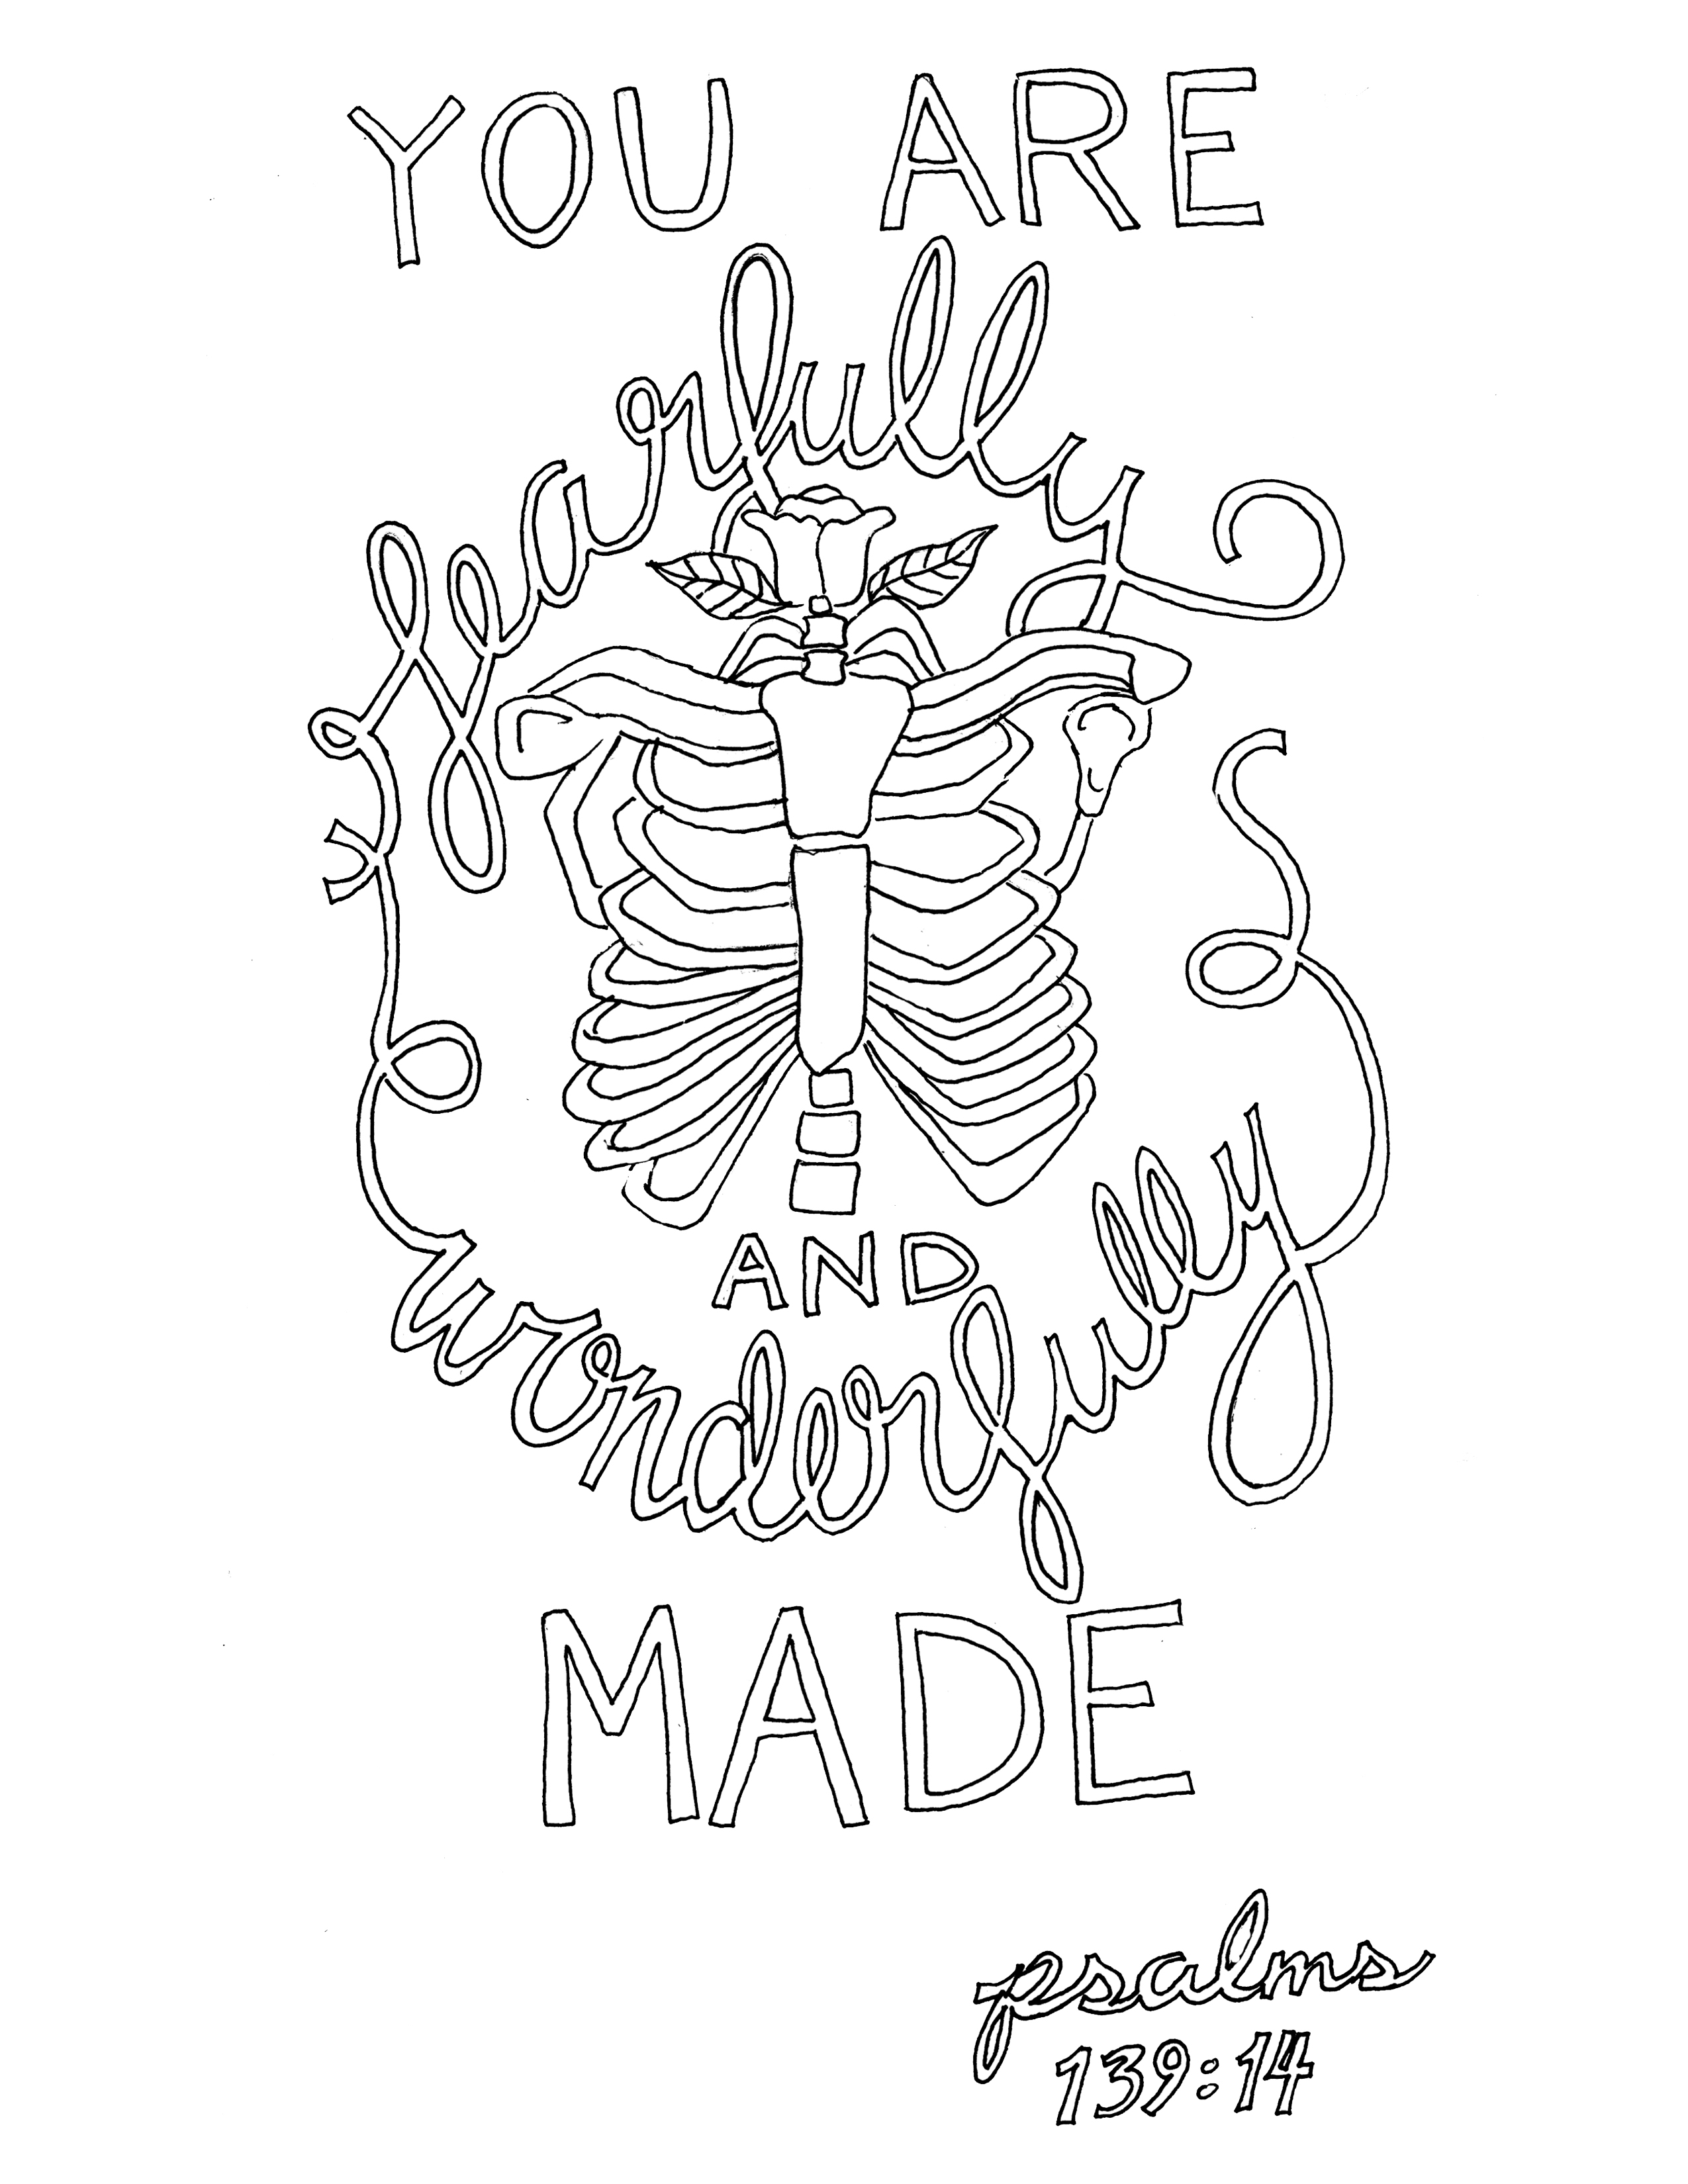 psalm 139 coloring page praise and worship coloring pages bible coloring pages 139 psalm page coloring